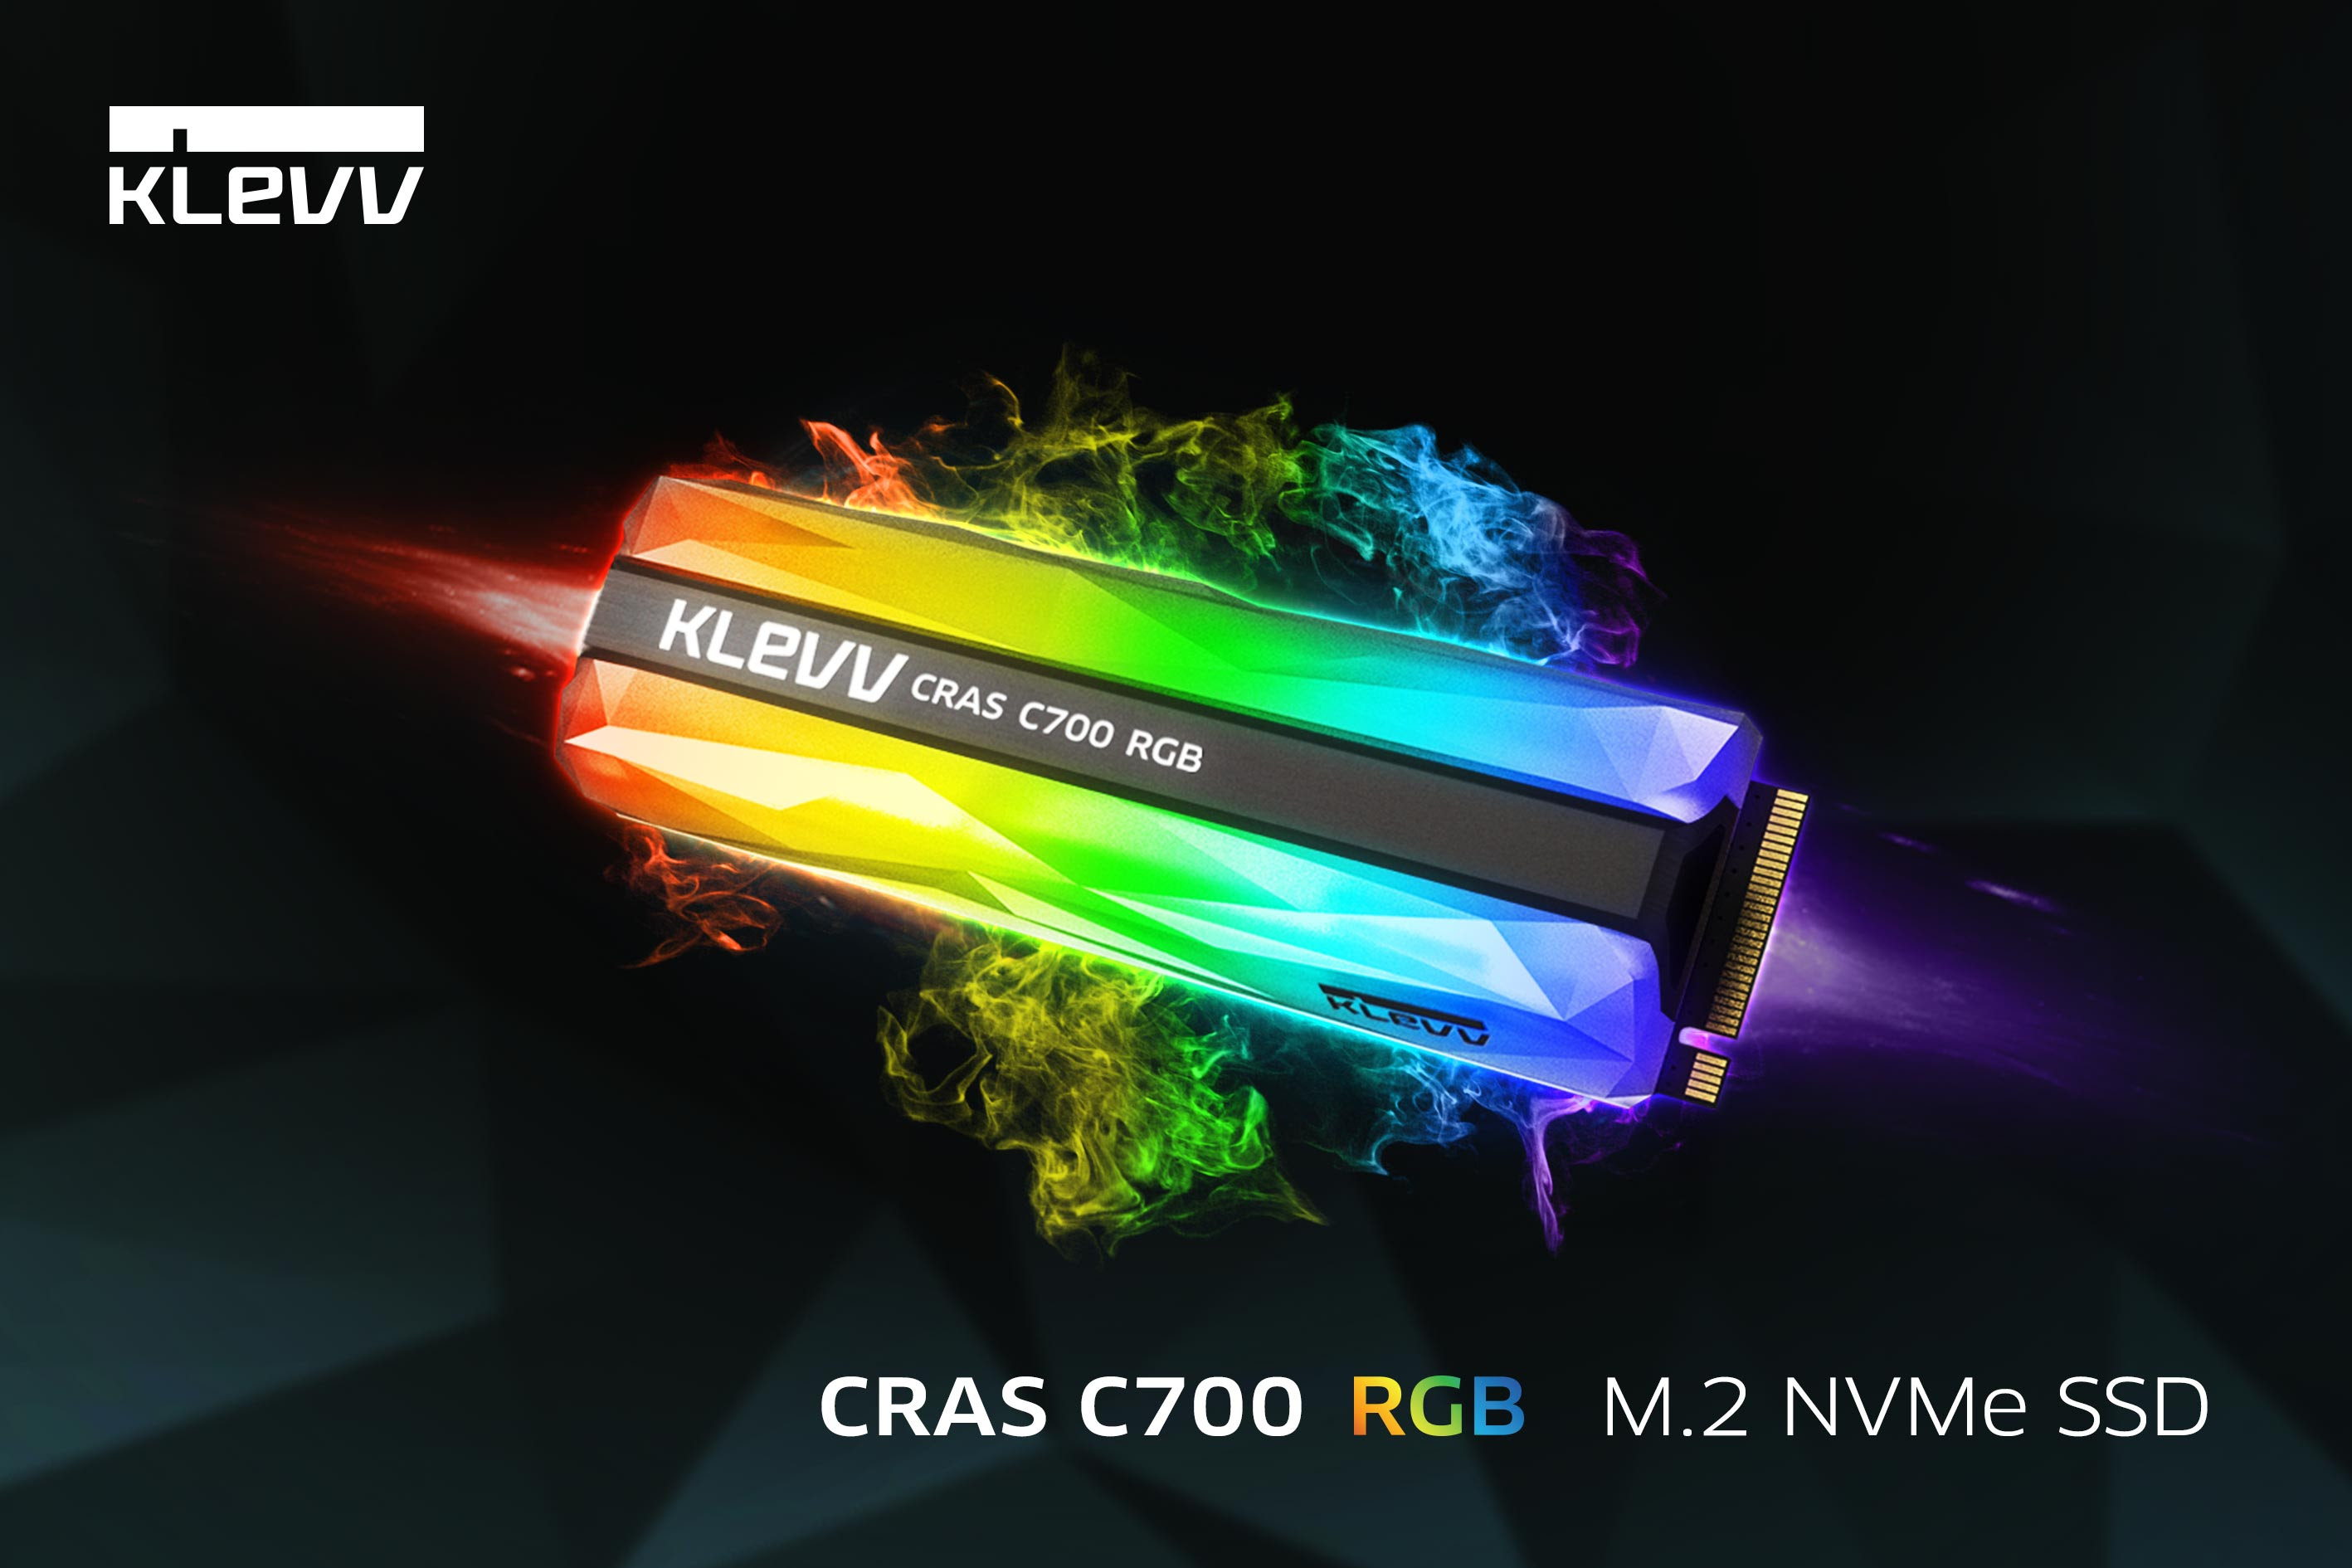 Enable images or just imagine how amazing the KLEVV CRAS C700 RGB M.2 NVMe SSD looks like..